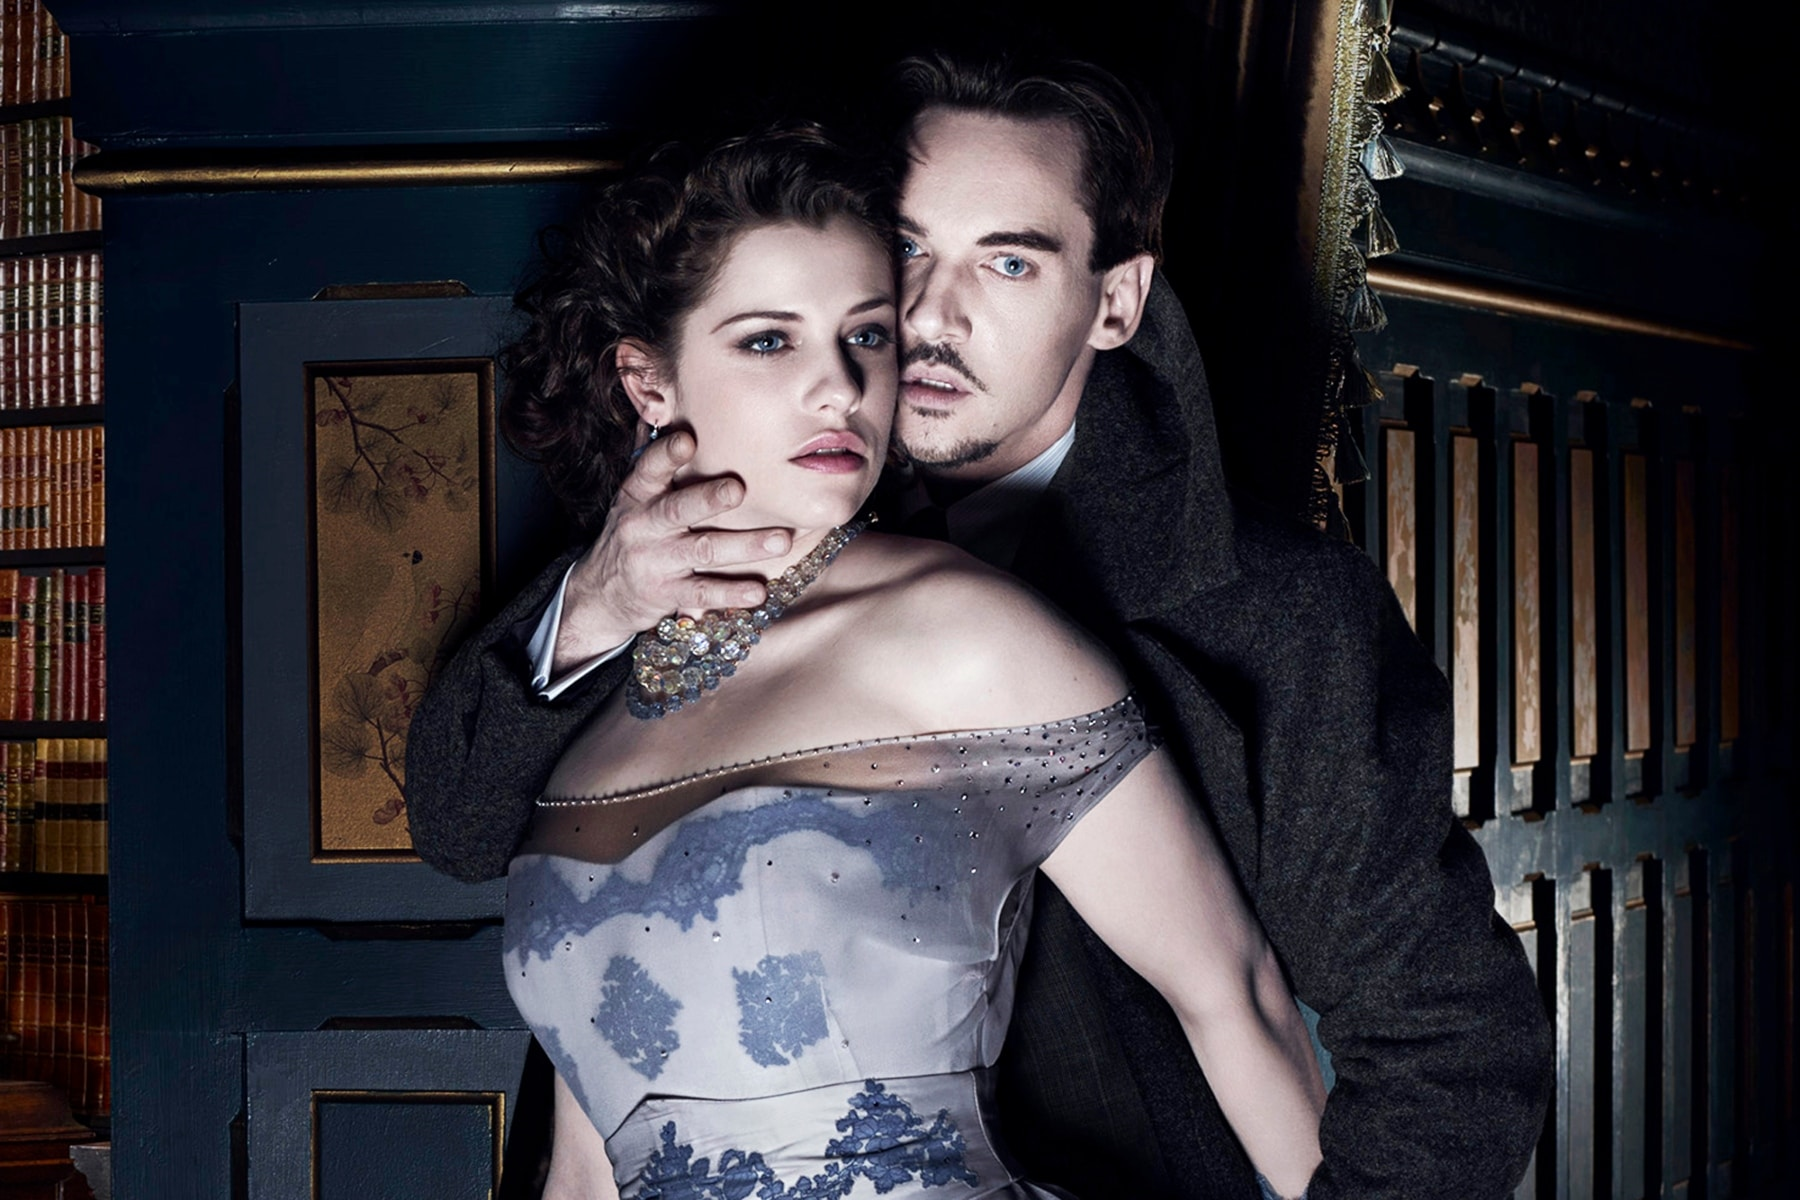 The Neo-Gothicism in 'Dracula', and 'Ripper Street' Television Series